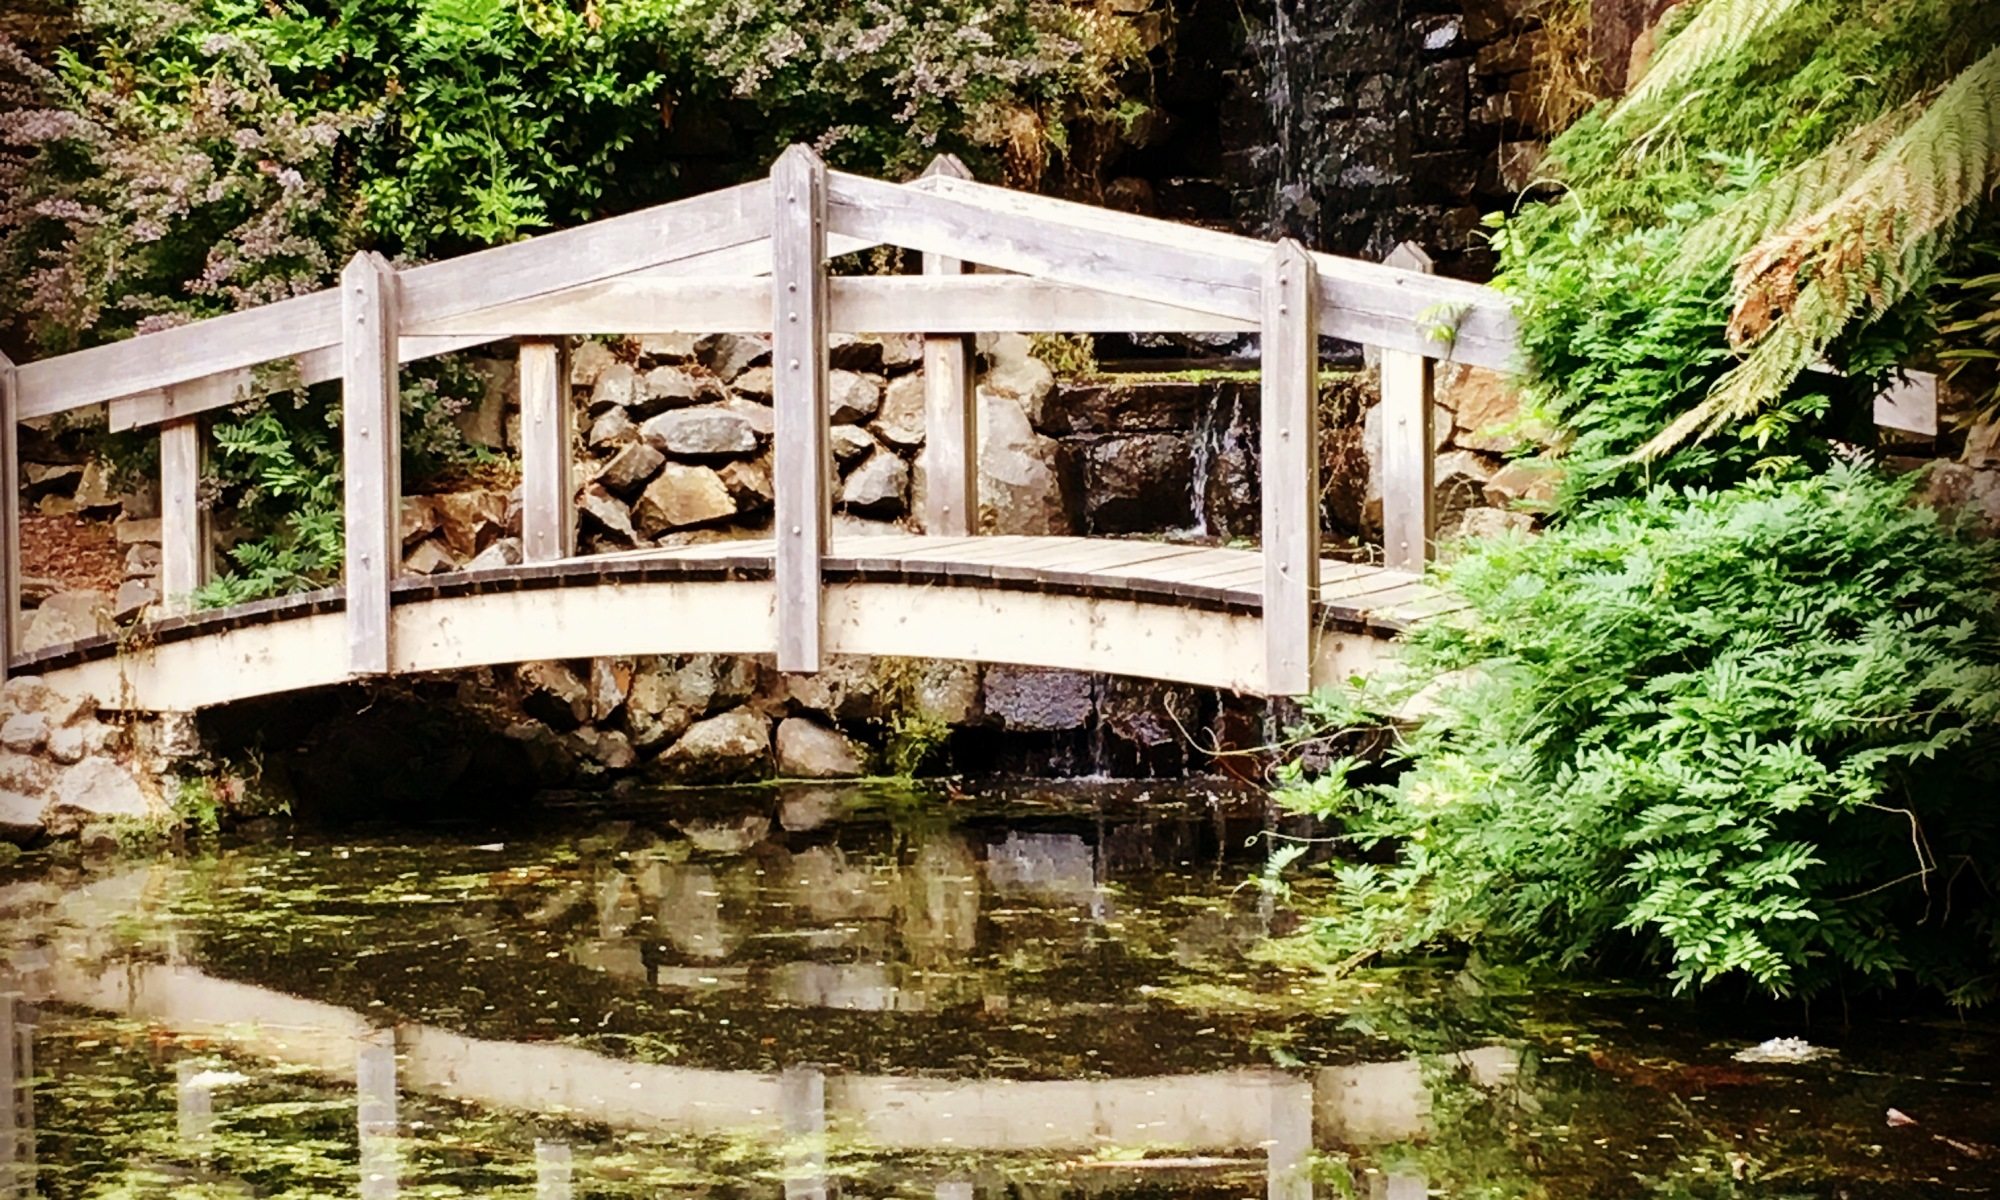 Bridge at the bottom of the garden